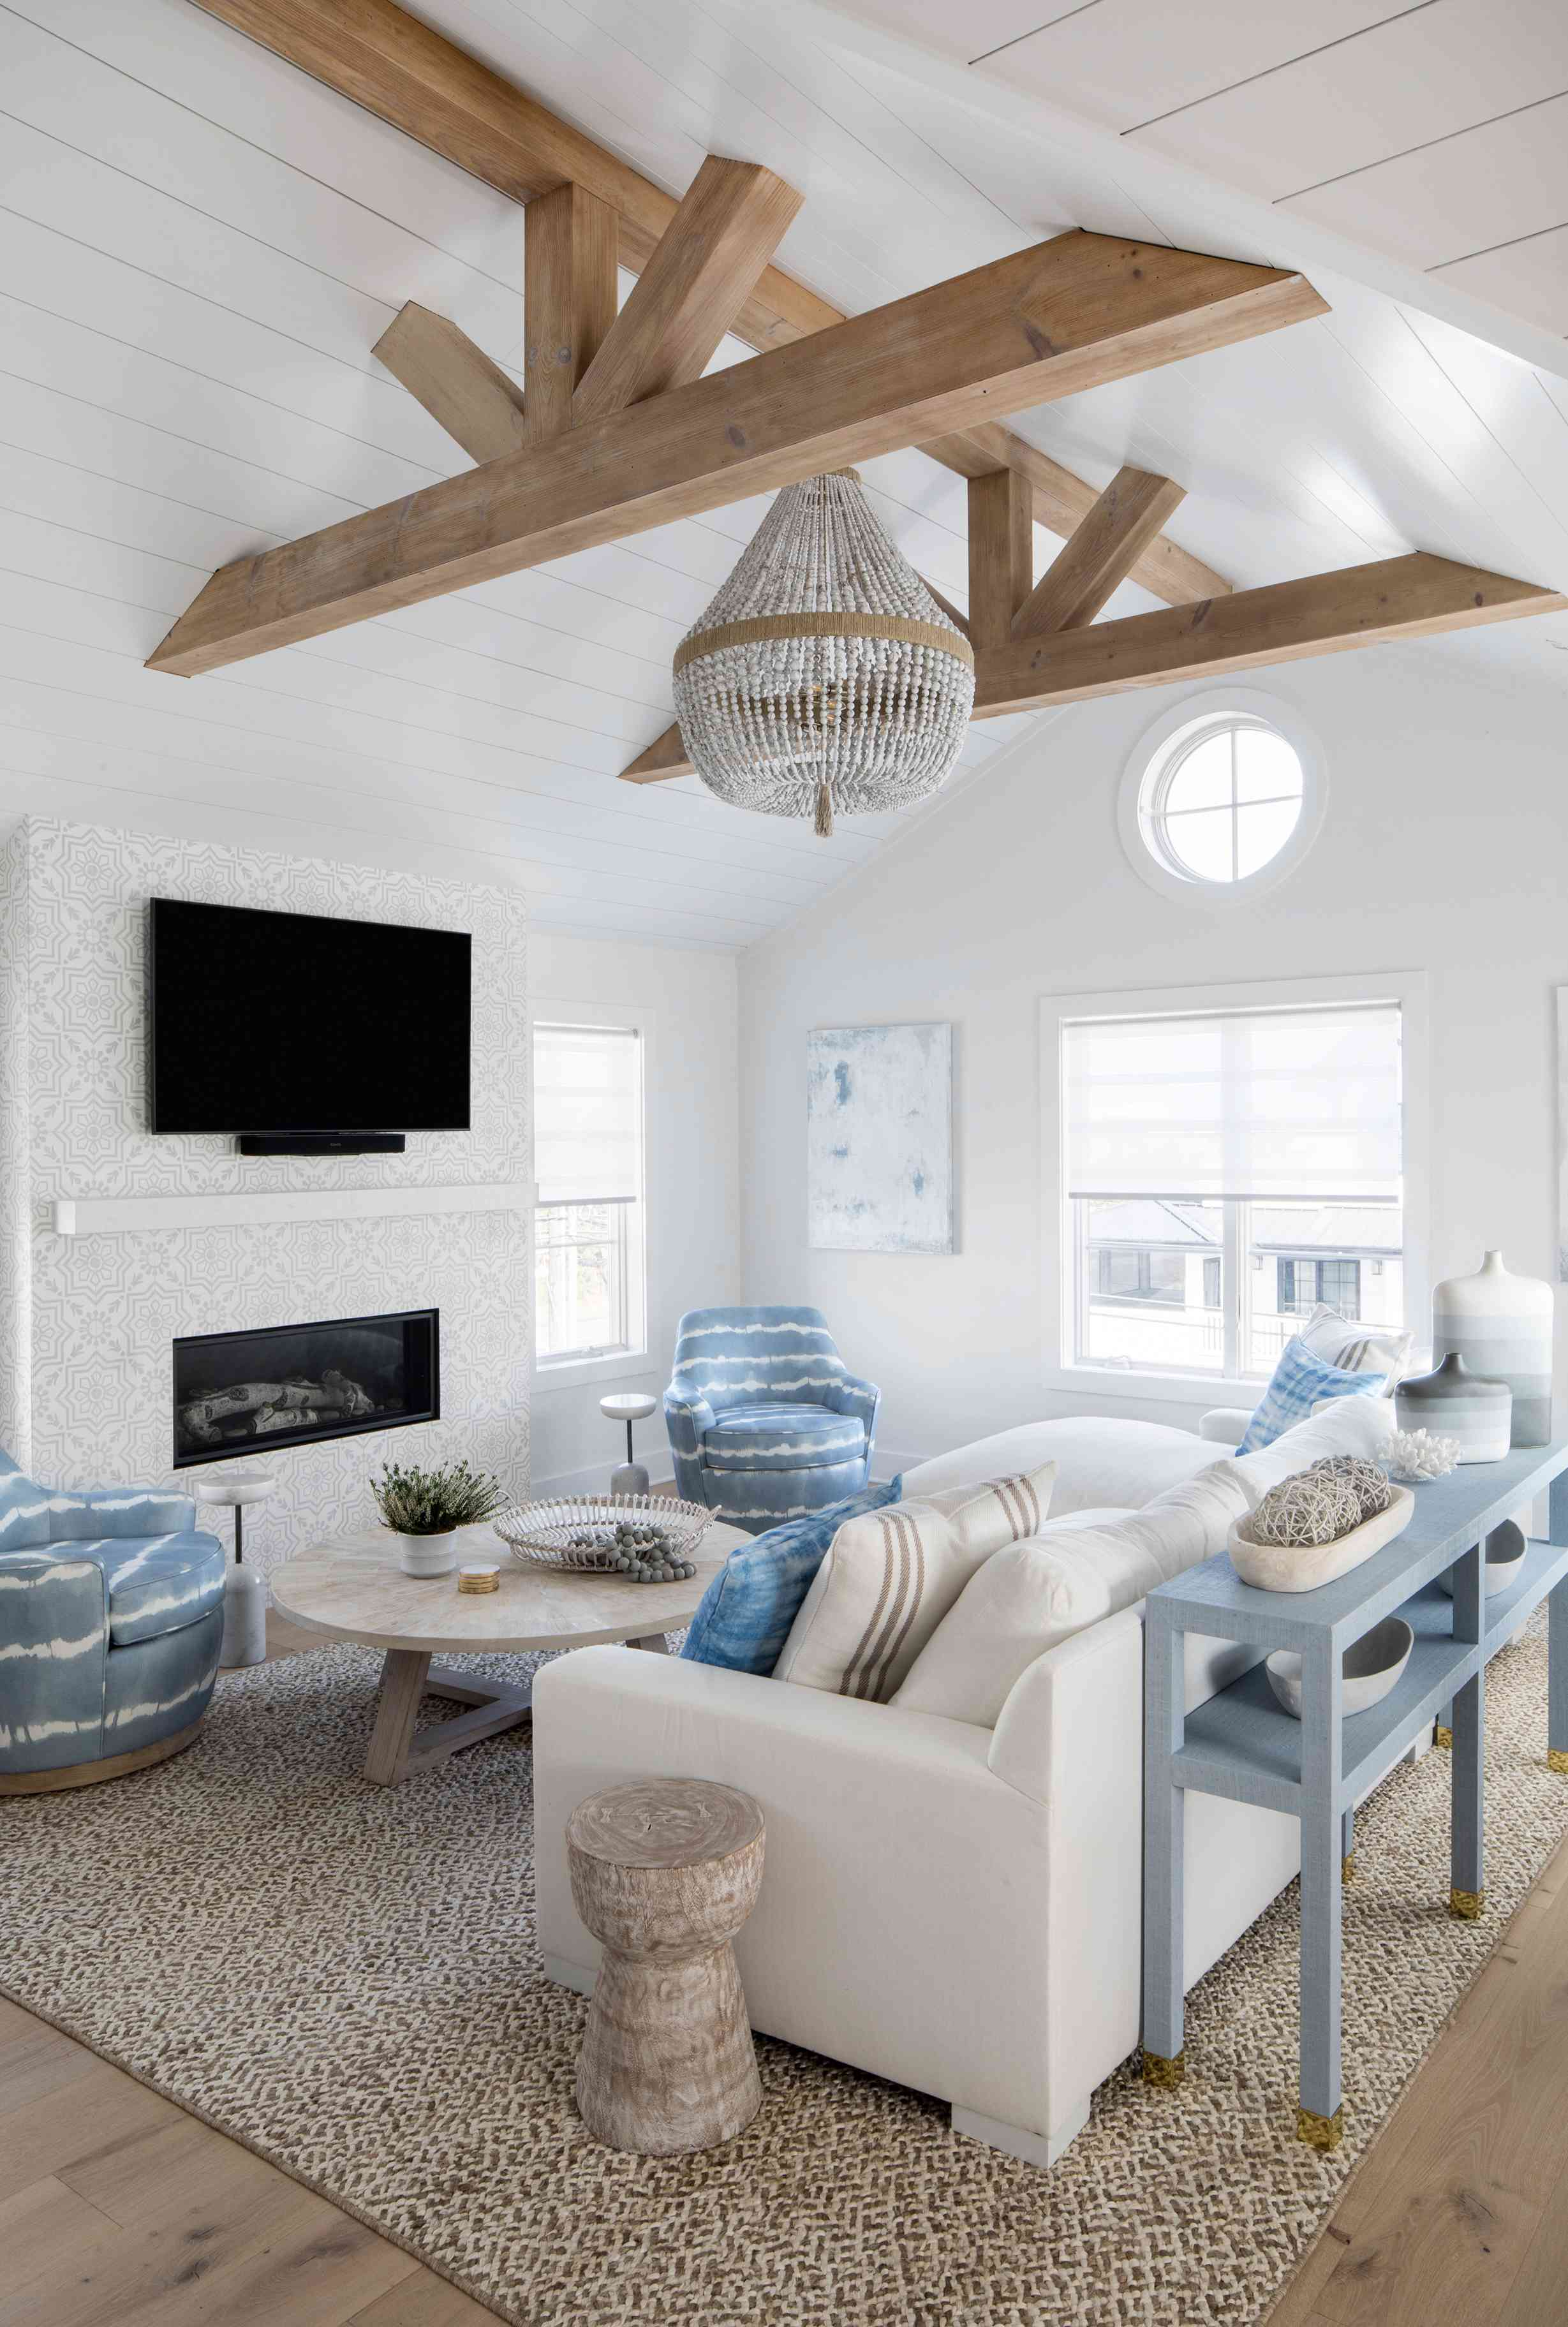 Karen B. Wolfe's Long Beach Island home with raised ceilings in living area